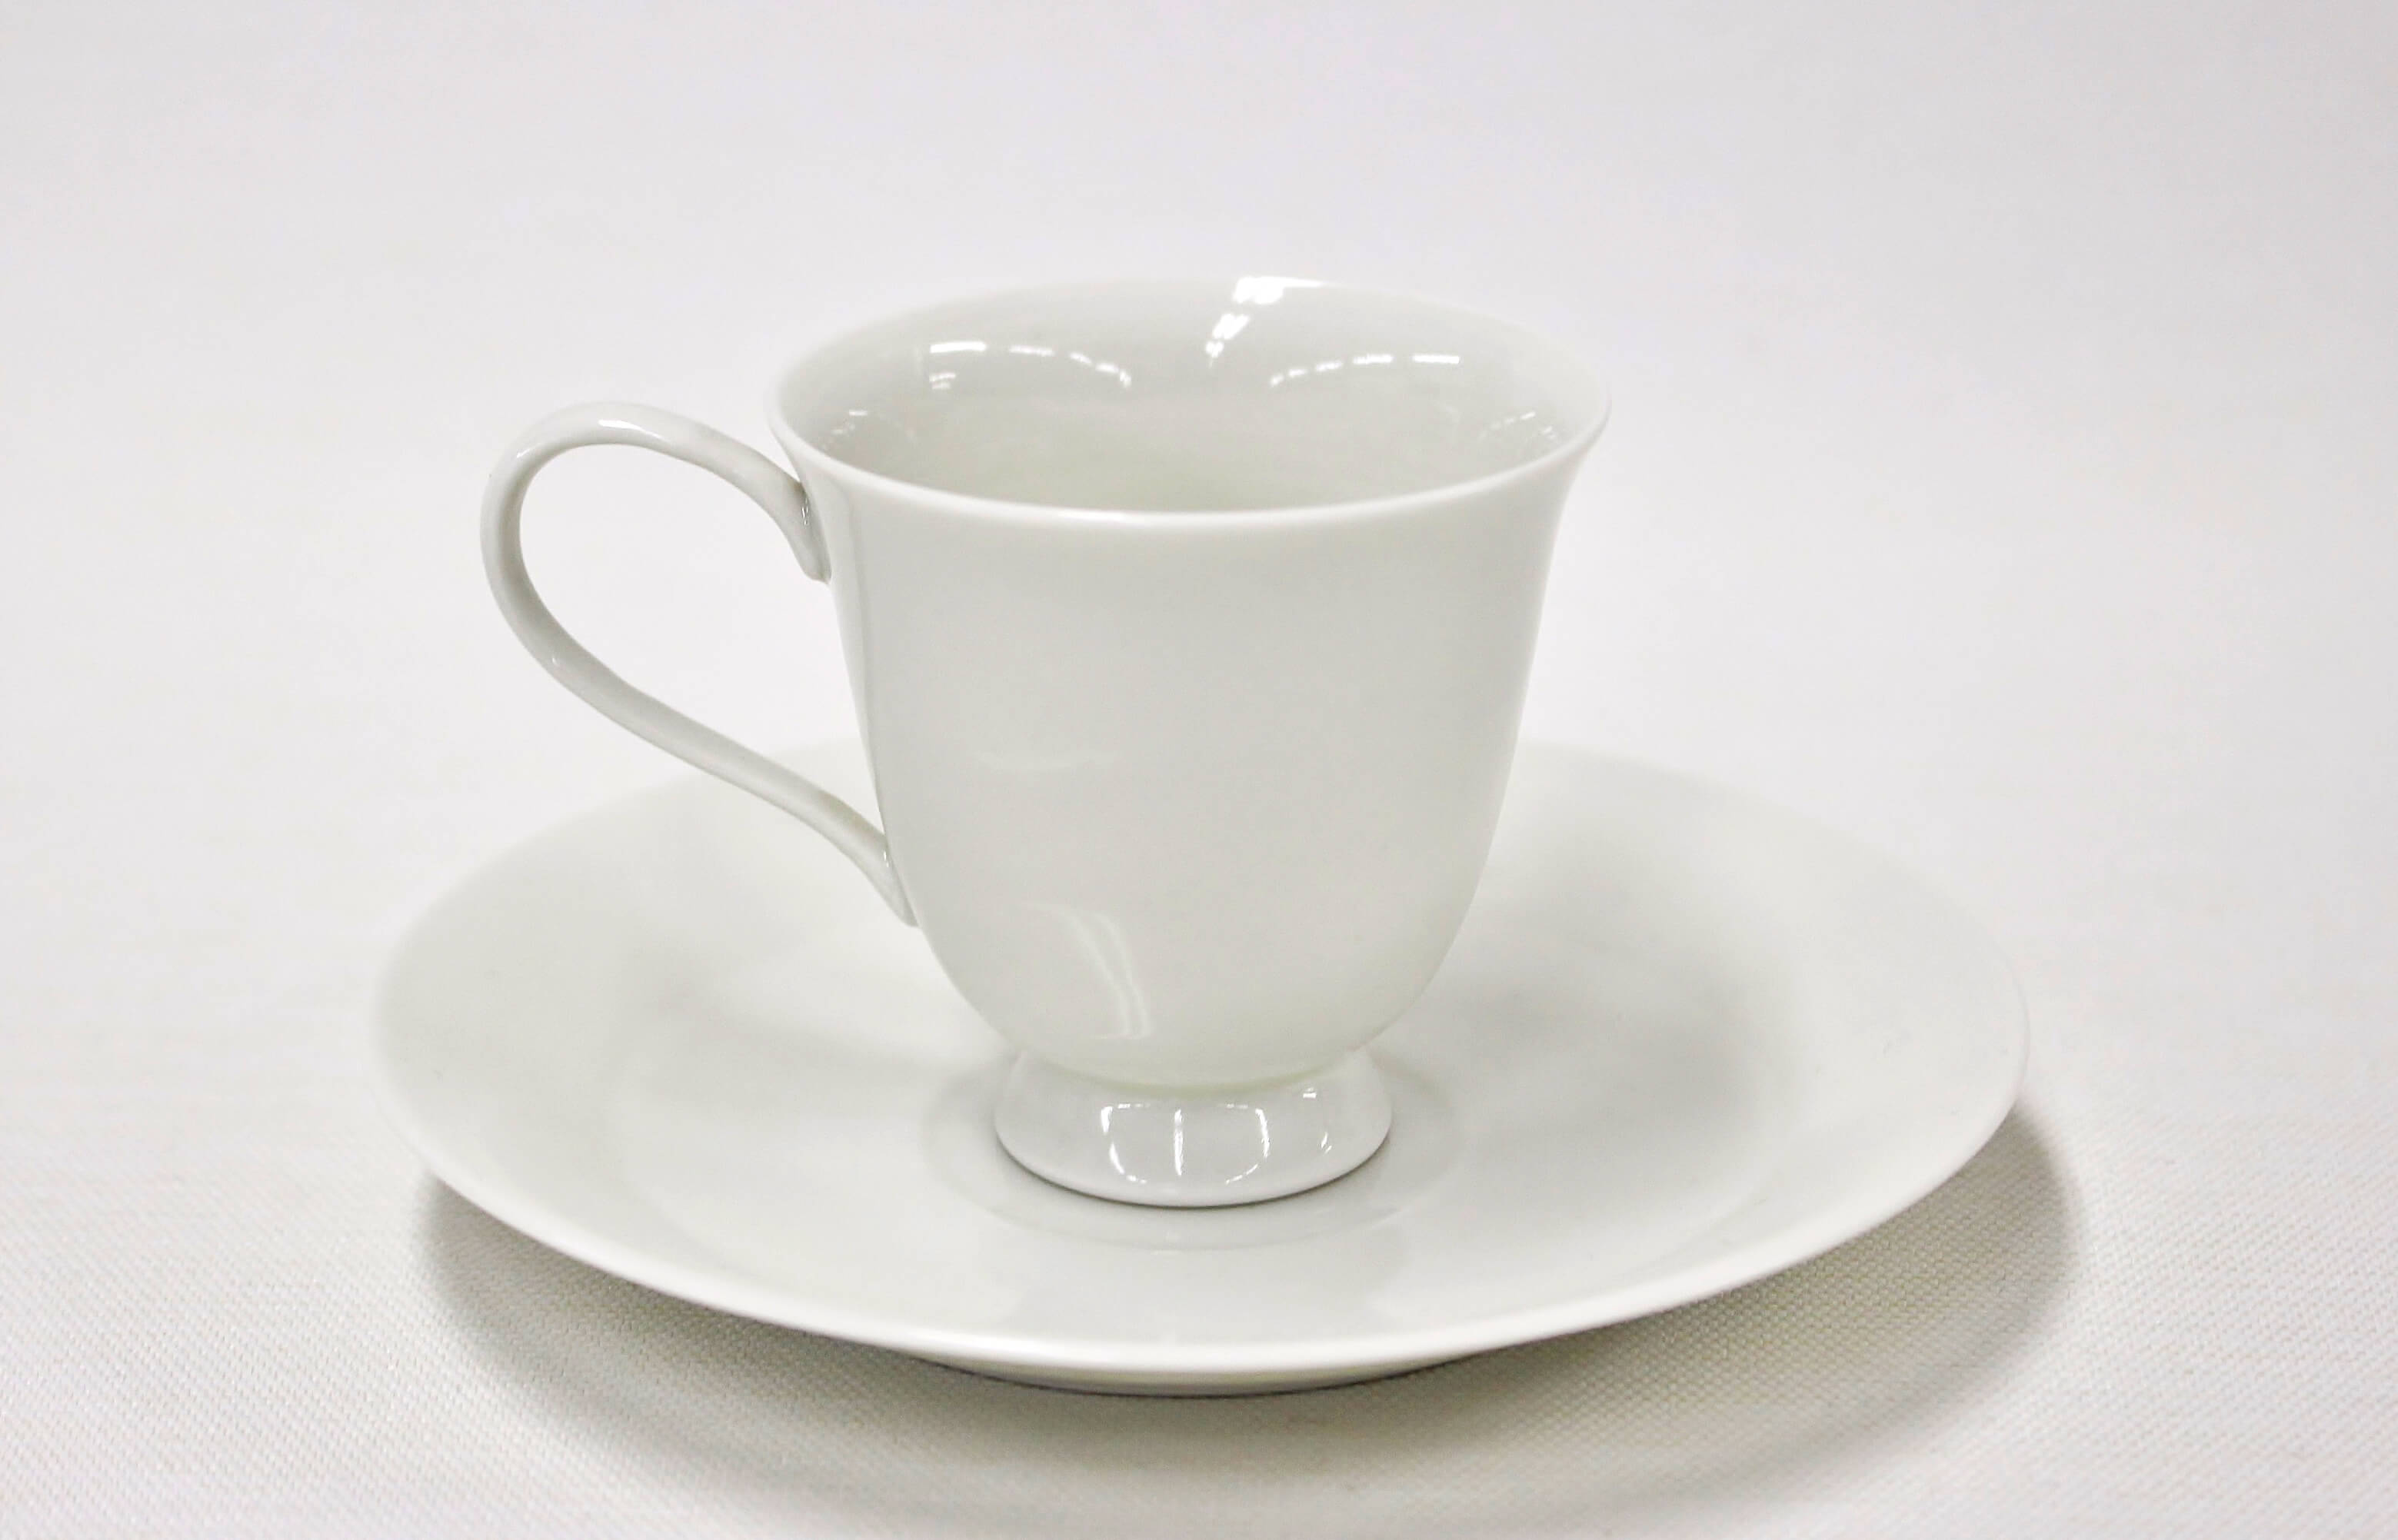 Hirato white porcelain bowl plate (with handle)